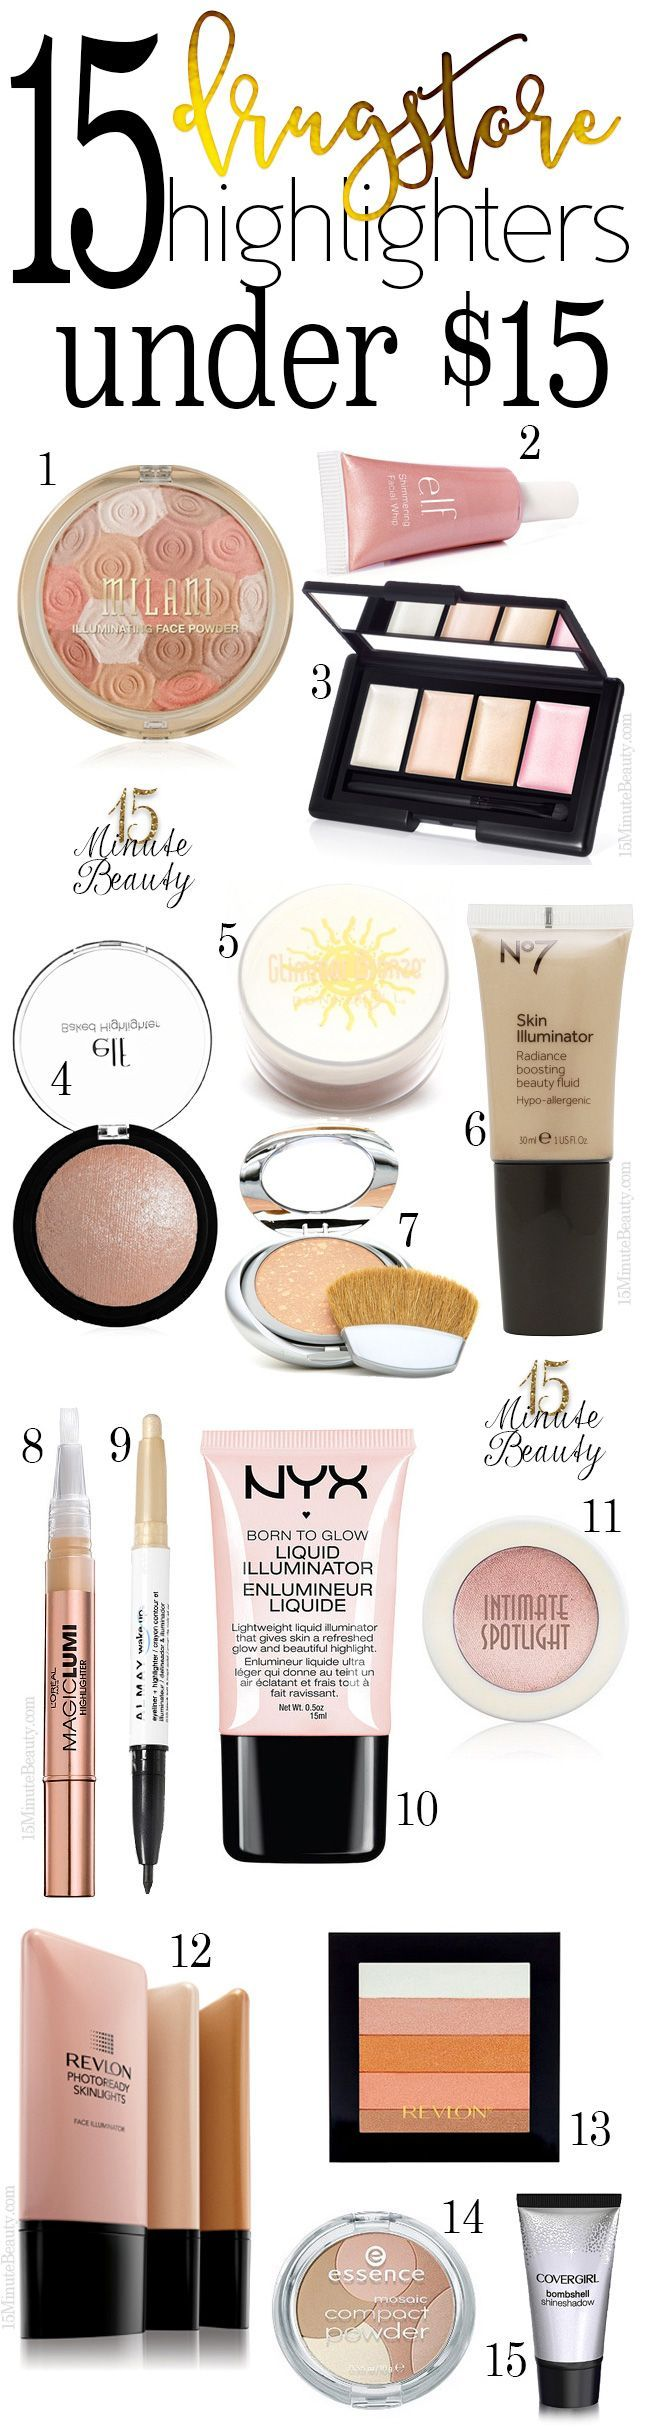 The best highlighters from the drugstore #BeautyResolutions I am hooked on highlighting & want to try lots of different ones to find my fave! Currently loving the NYX one in this pic